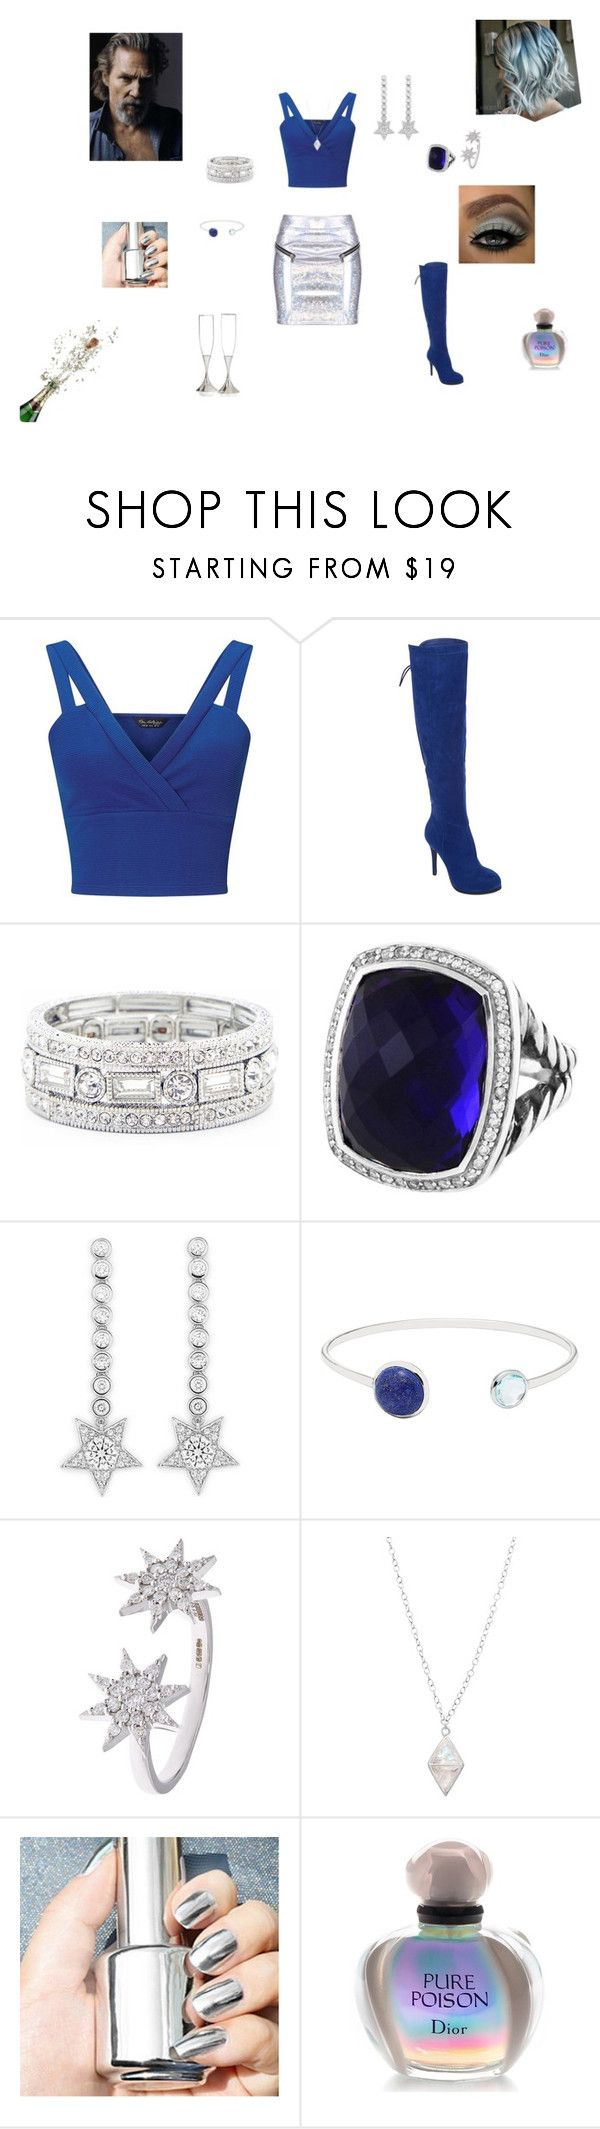 """Dazzle Him"" by browncoat4ever ❤ liked on Polyvore featuring Miss Selfridge, Two Lips, Sole Society, David Yurman, CZ by Kenneth Jay Lane, Lazuli, Bee Goddess, Christian Dior and Nambé"